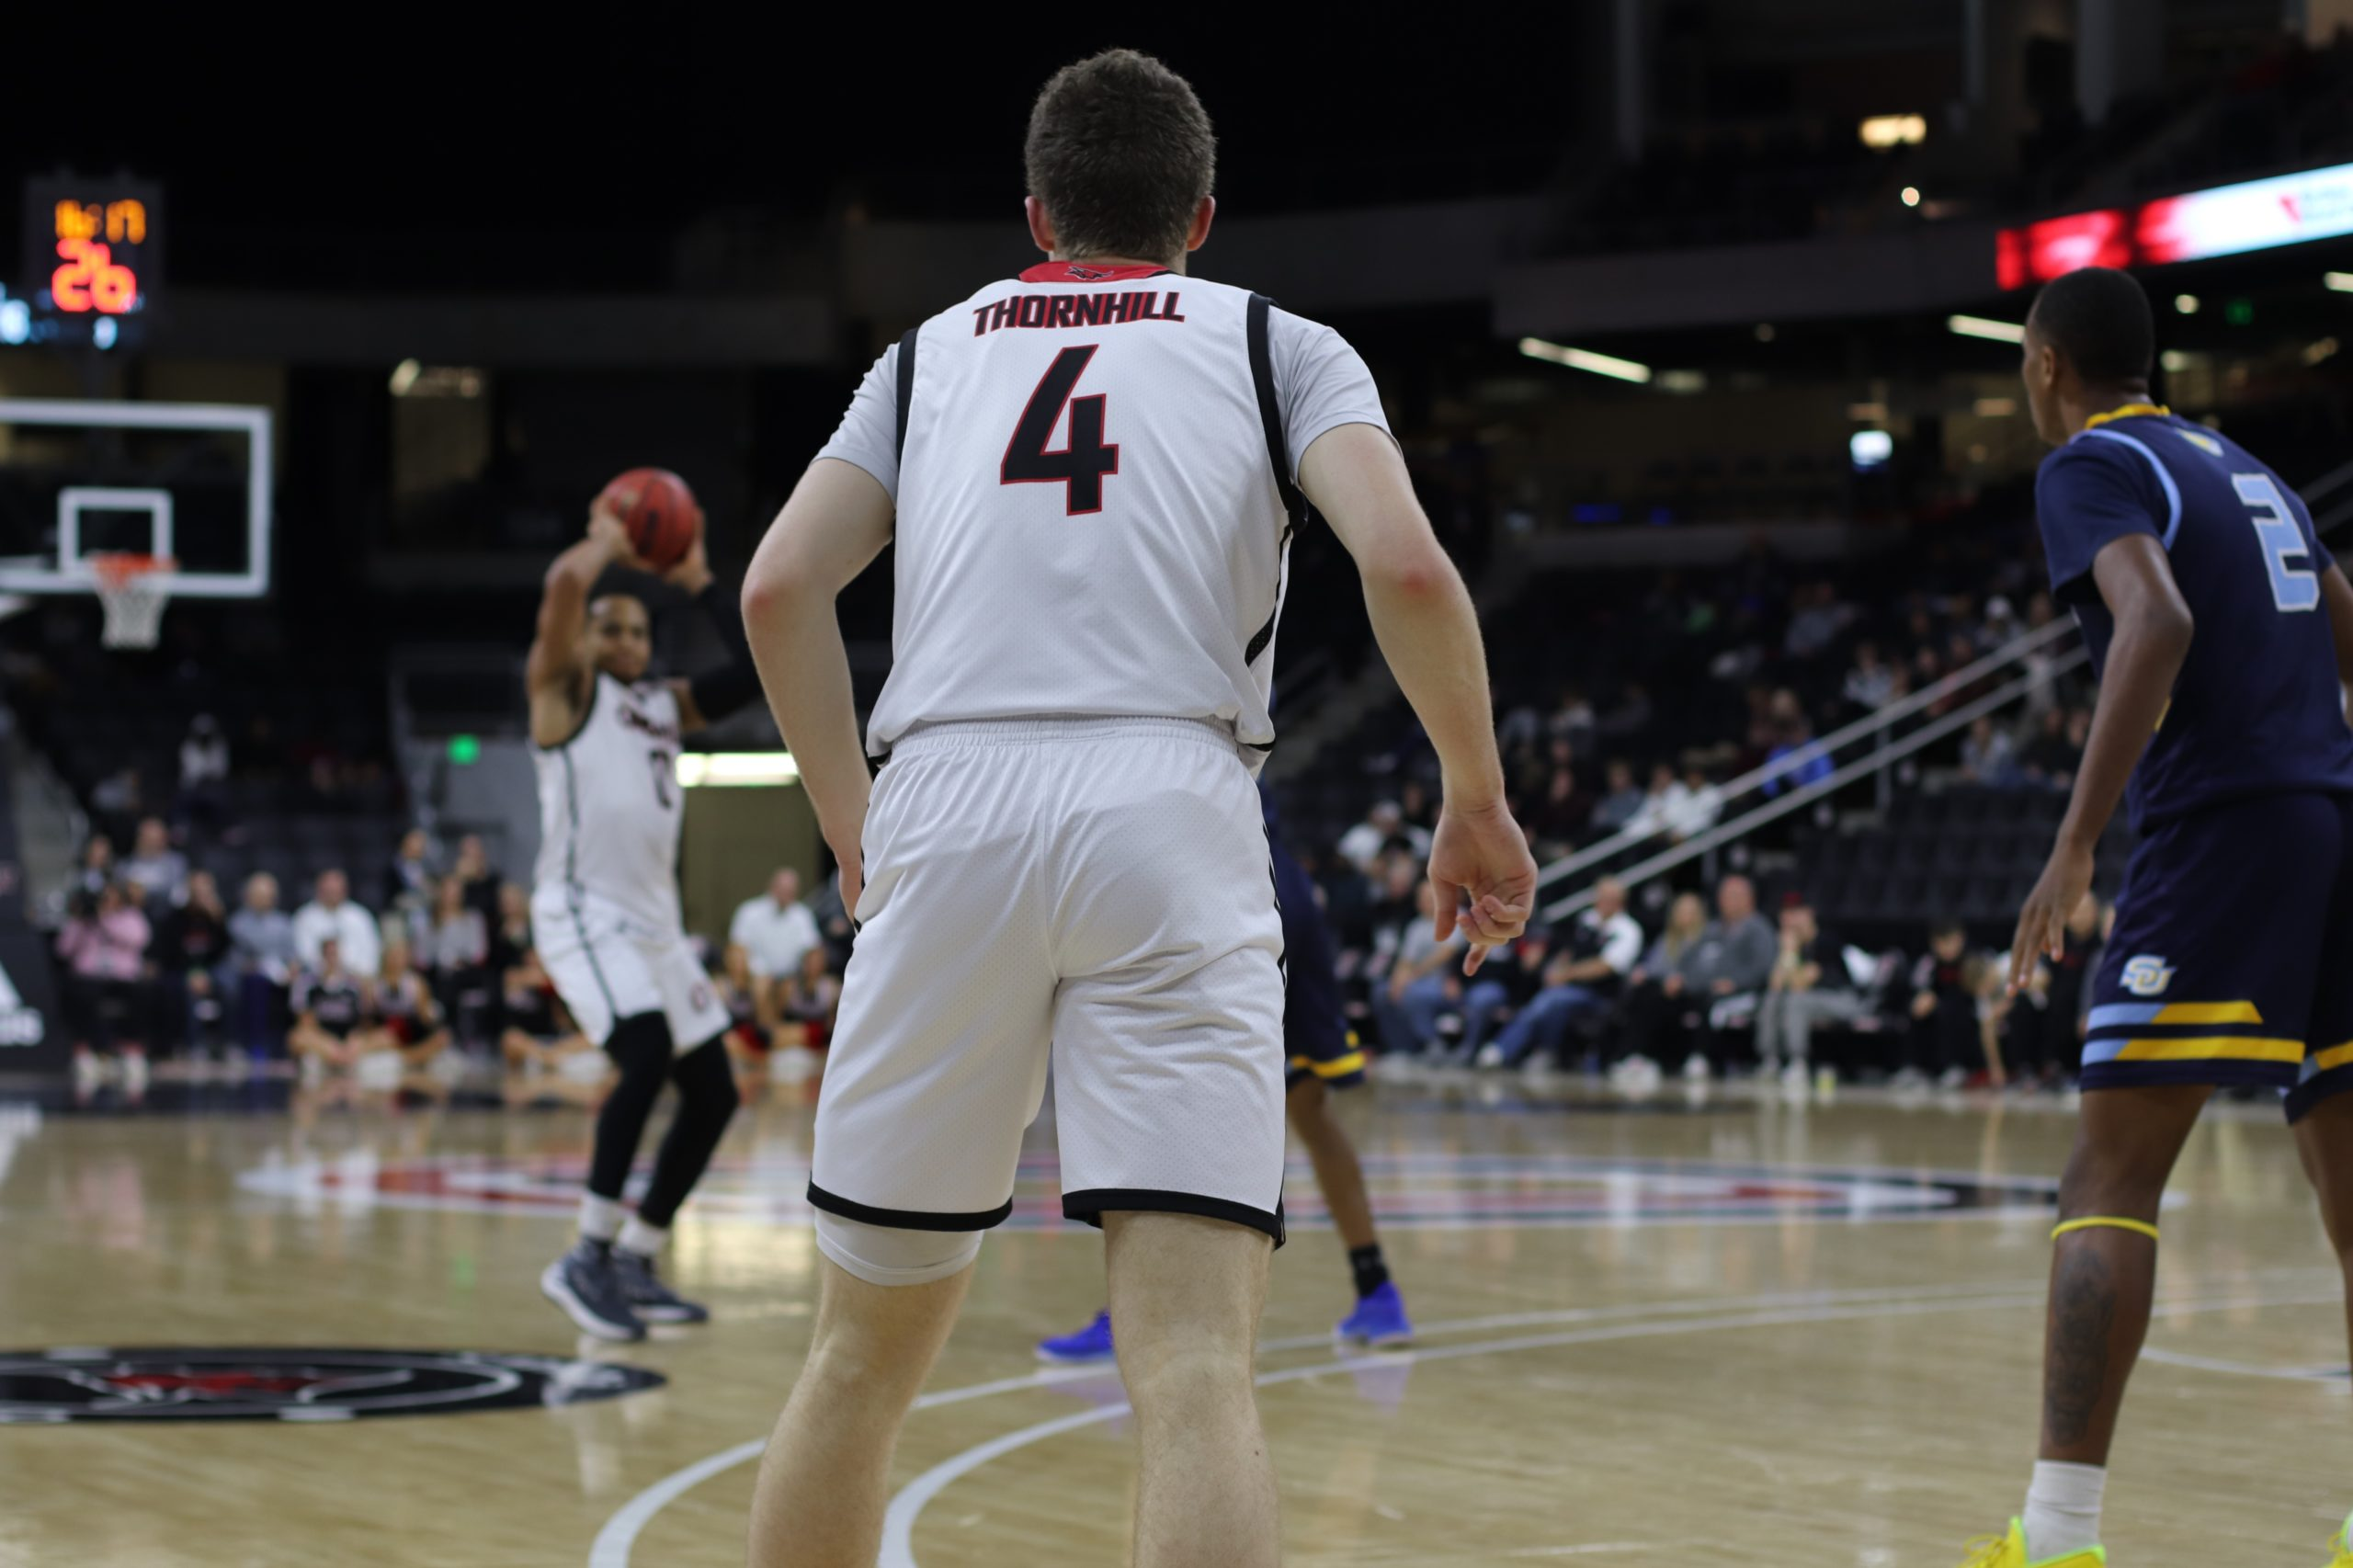 Omaha's Zach Thornhill in a home game against Southern University.